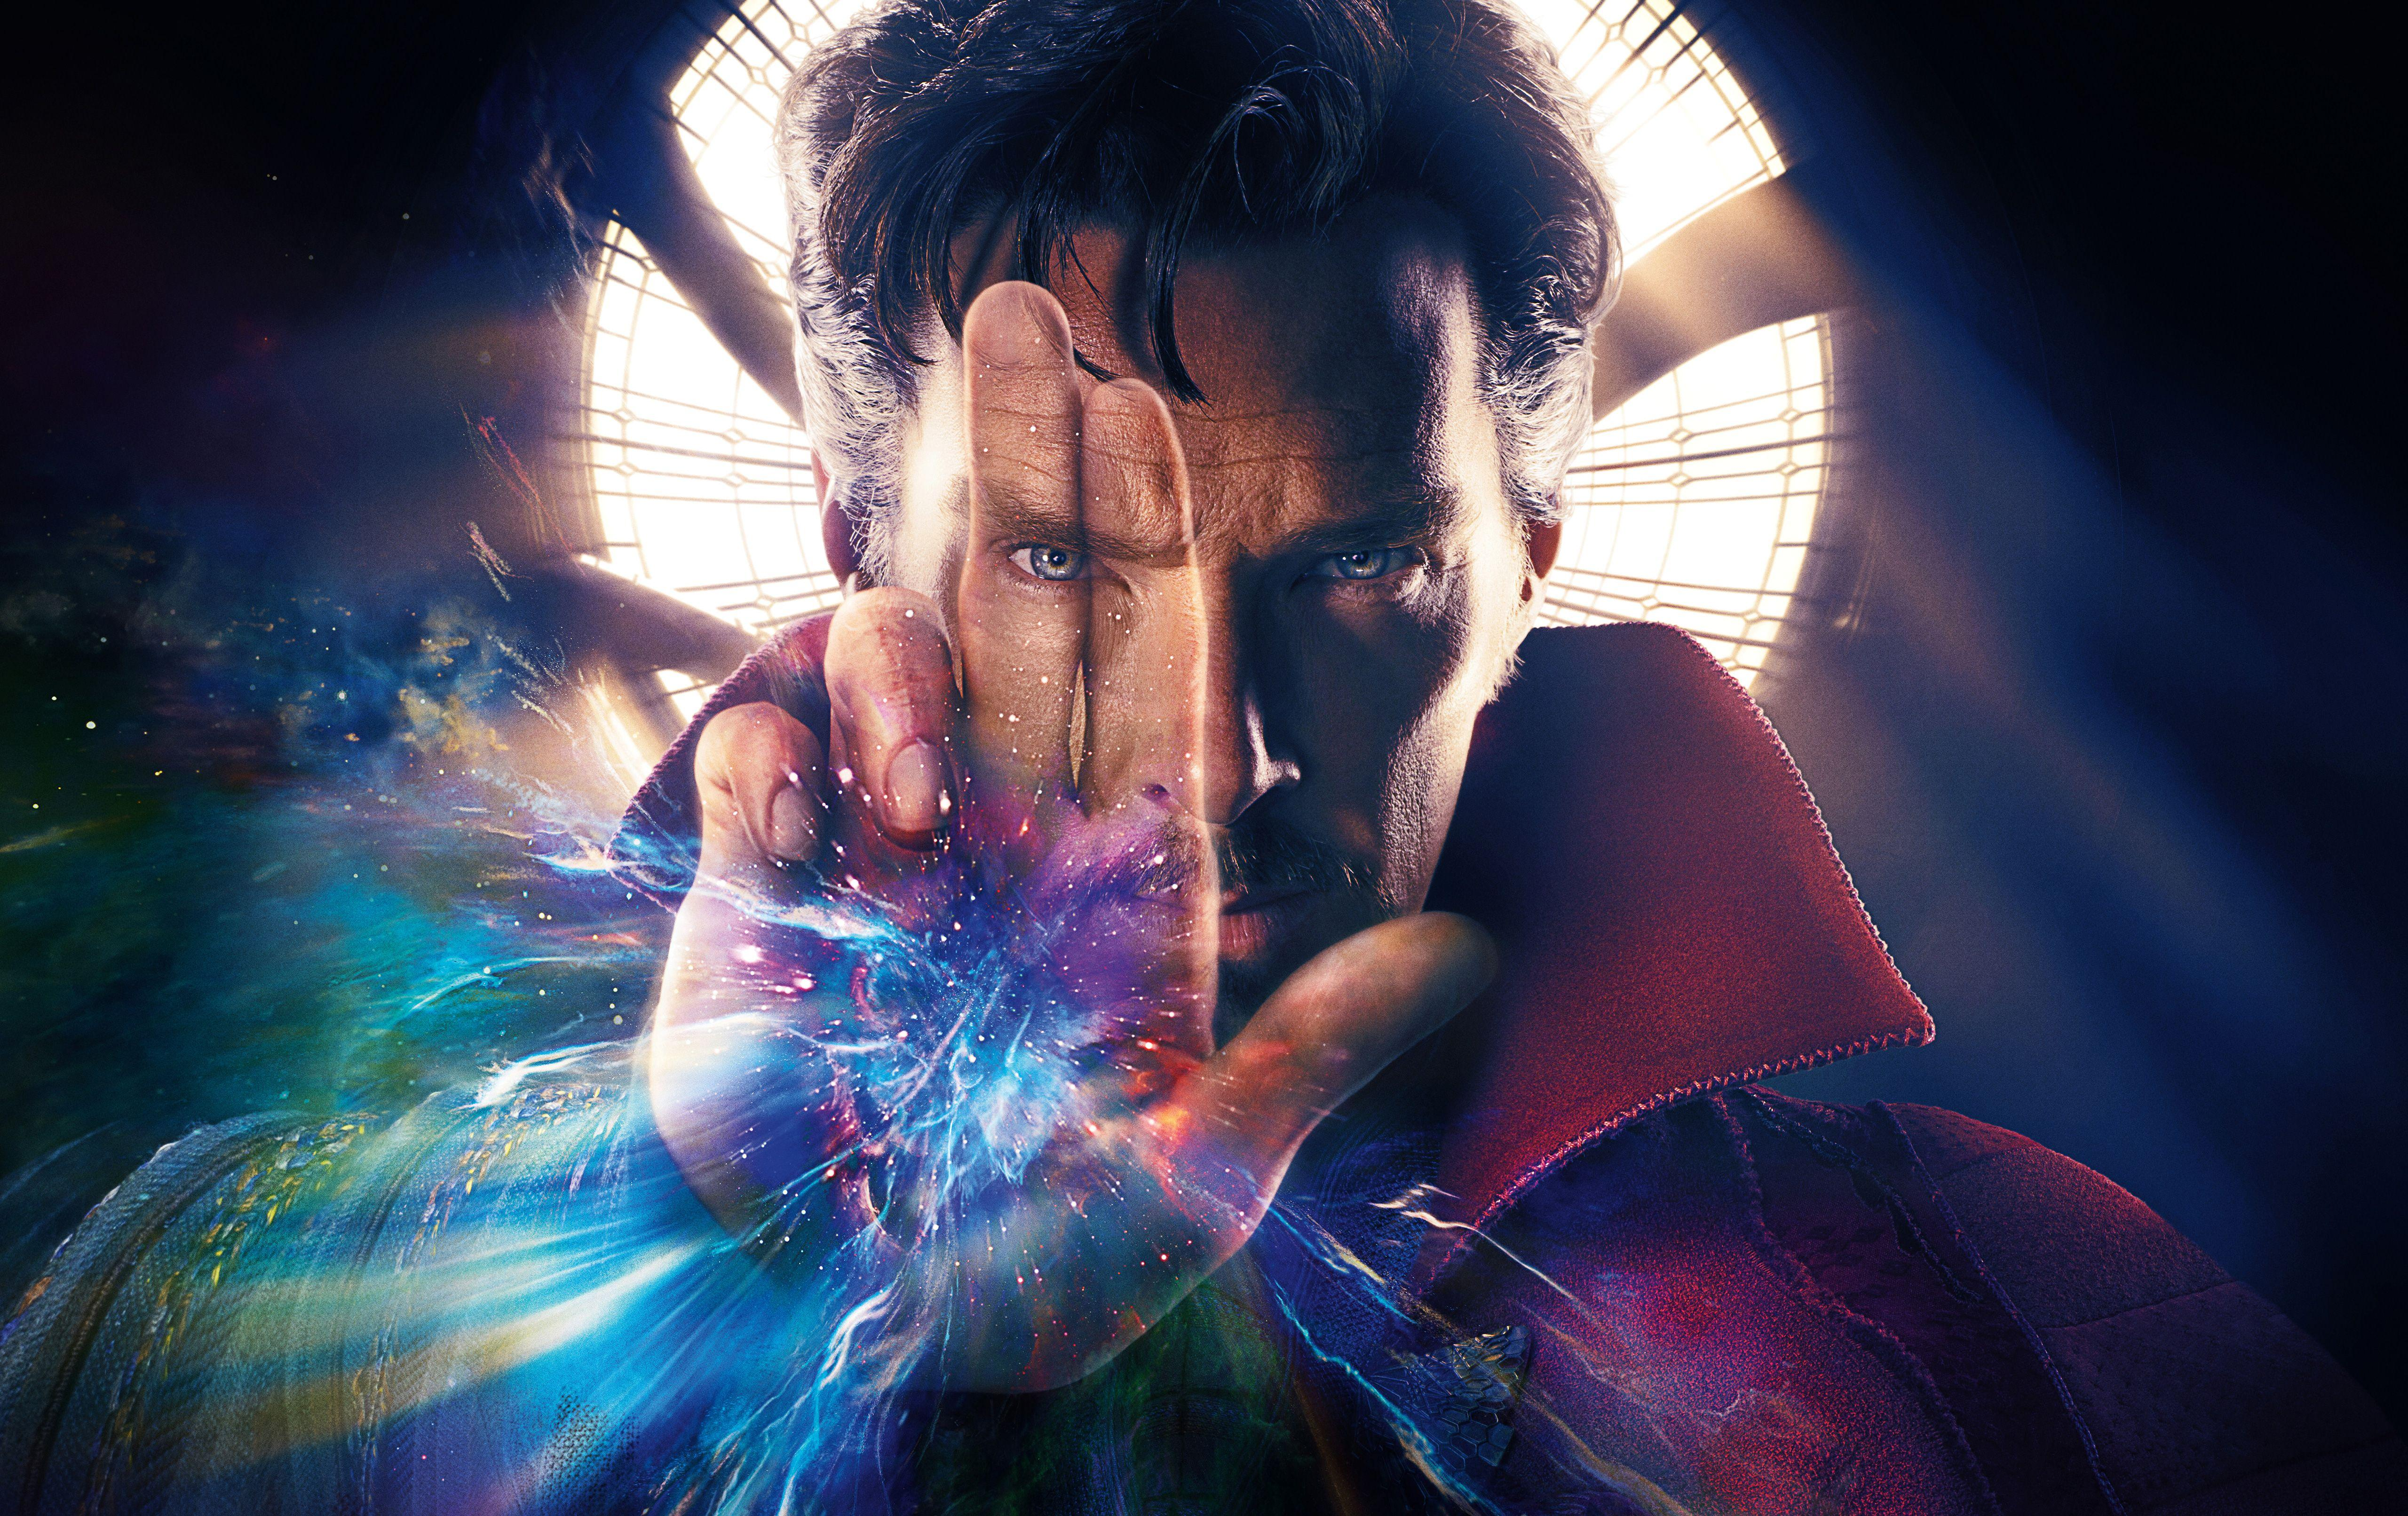 Wallpapers Benedict Cumberbatch, Doctor Strange, 2016, Movies,